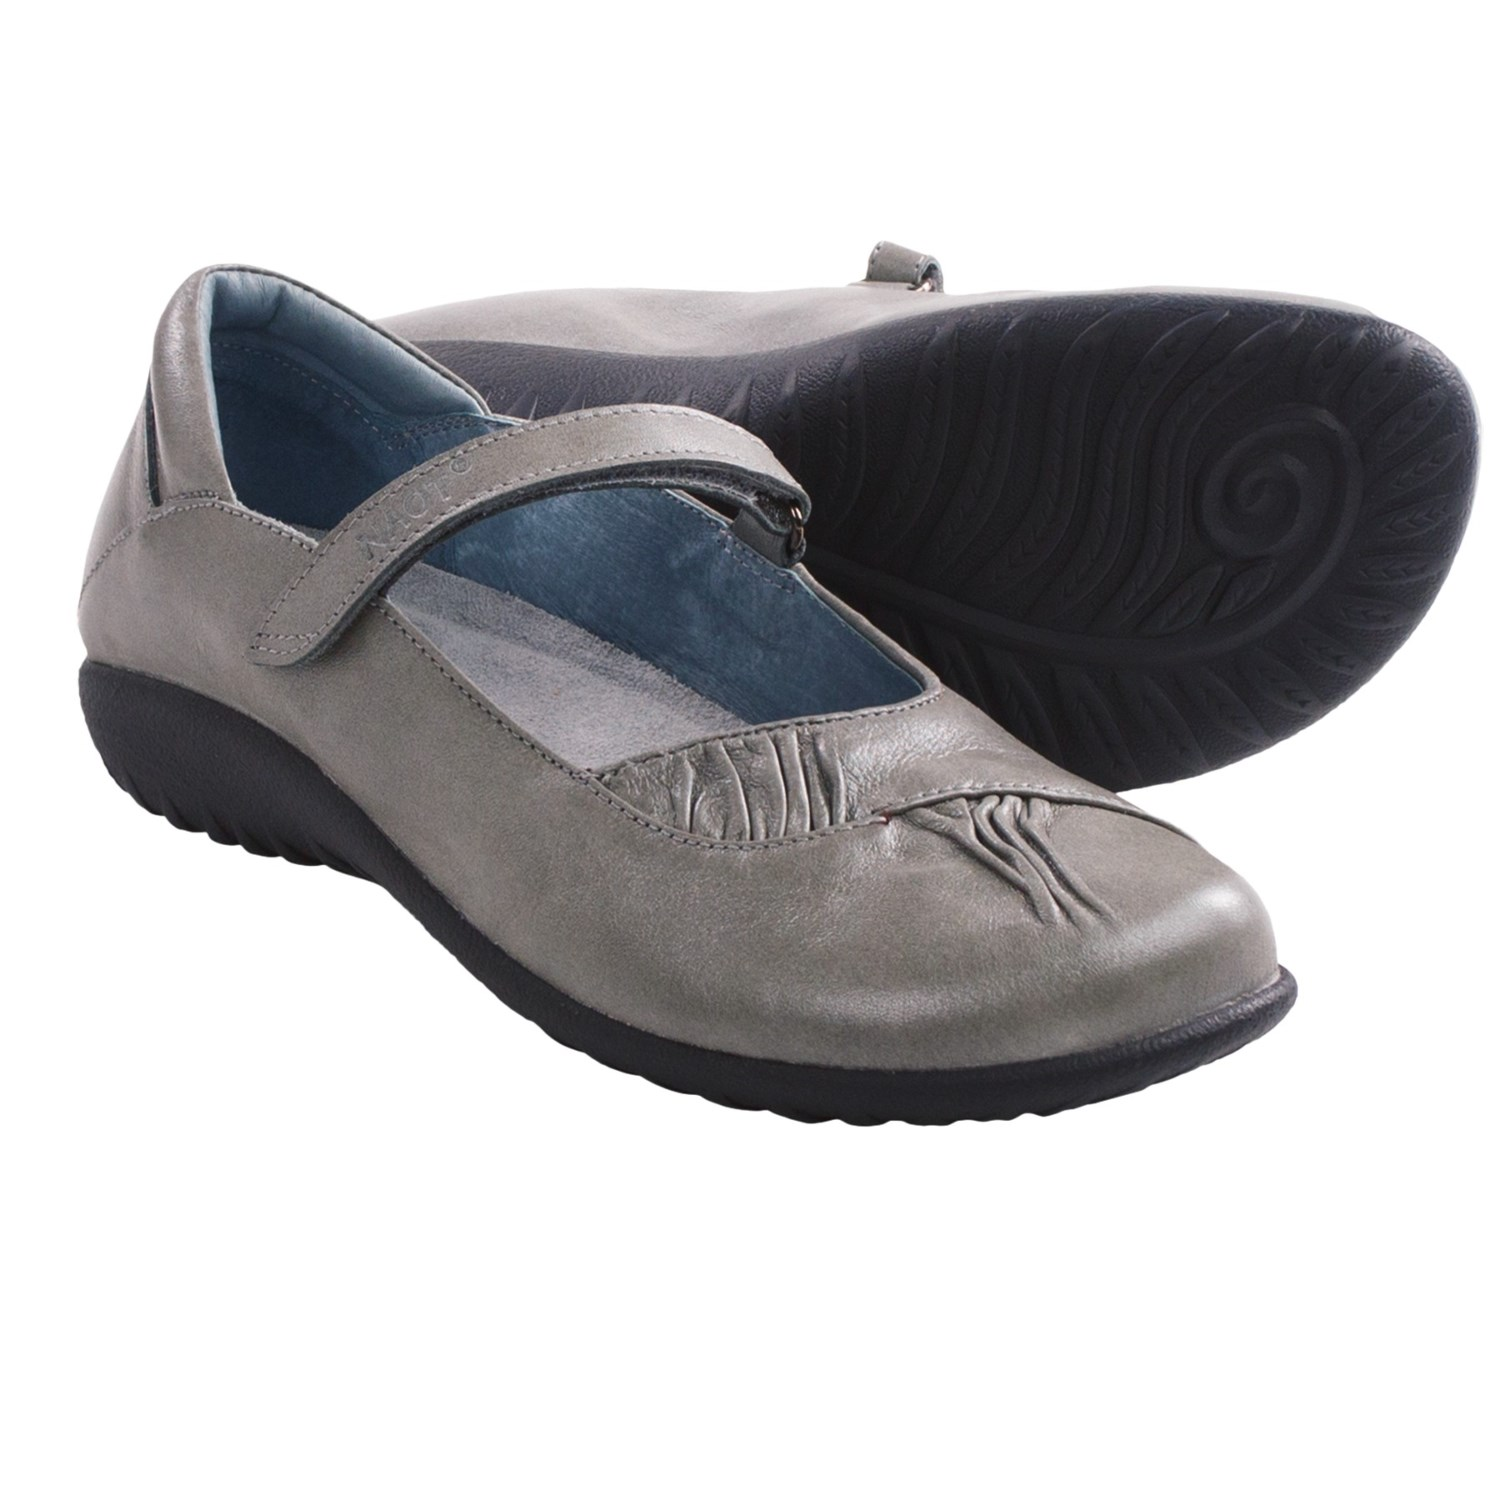 Naot womens shoes clearance :: Girls